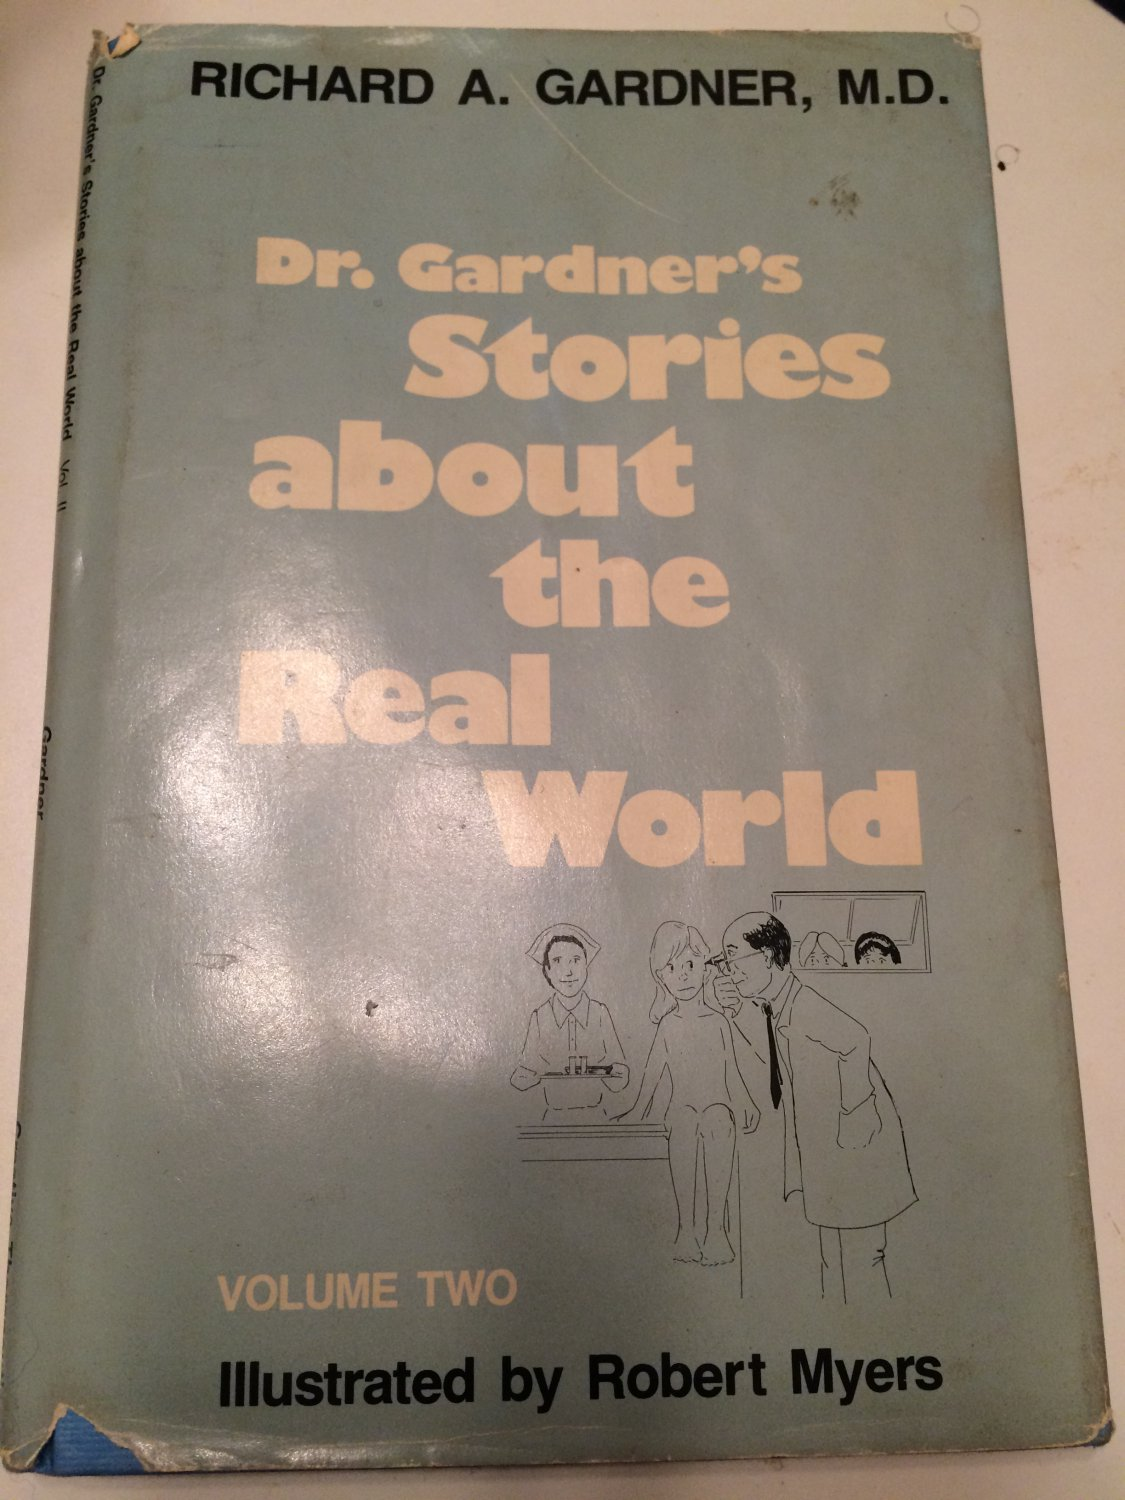 Dr. Gardner's Stories About the Real World  by Richard A. Gardner  (Author)